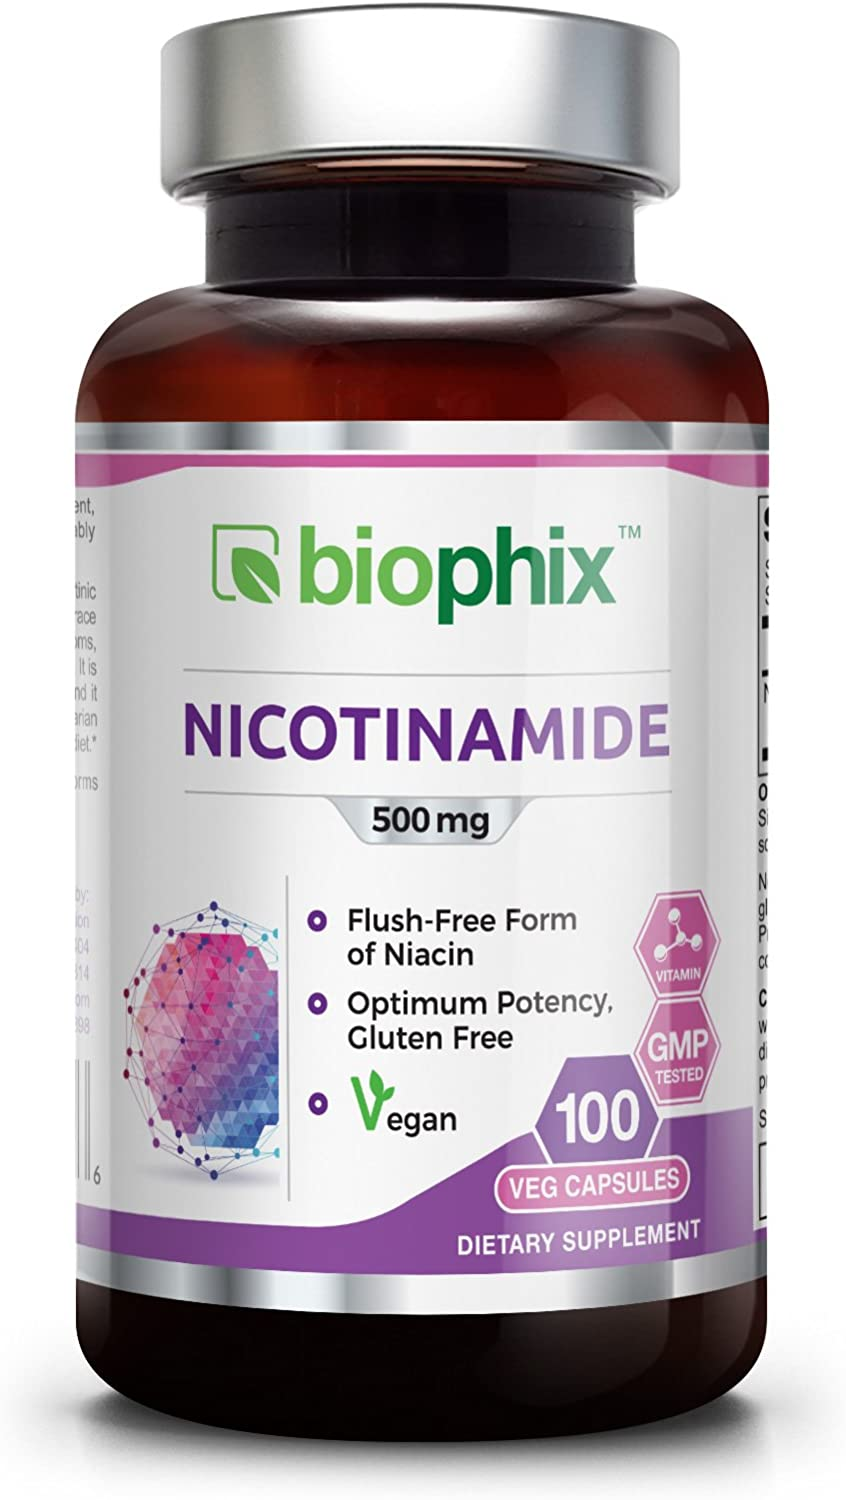 B3 Nicotinamide 500 mg 100 Vegetarian Capsules – Natural Flush-Free Vitamin Formula Gluten-Free Nicotinic Amide Niacin Skin Health and Healthy Cell Repair Support